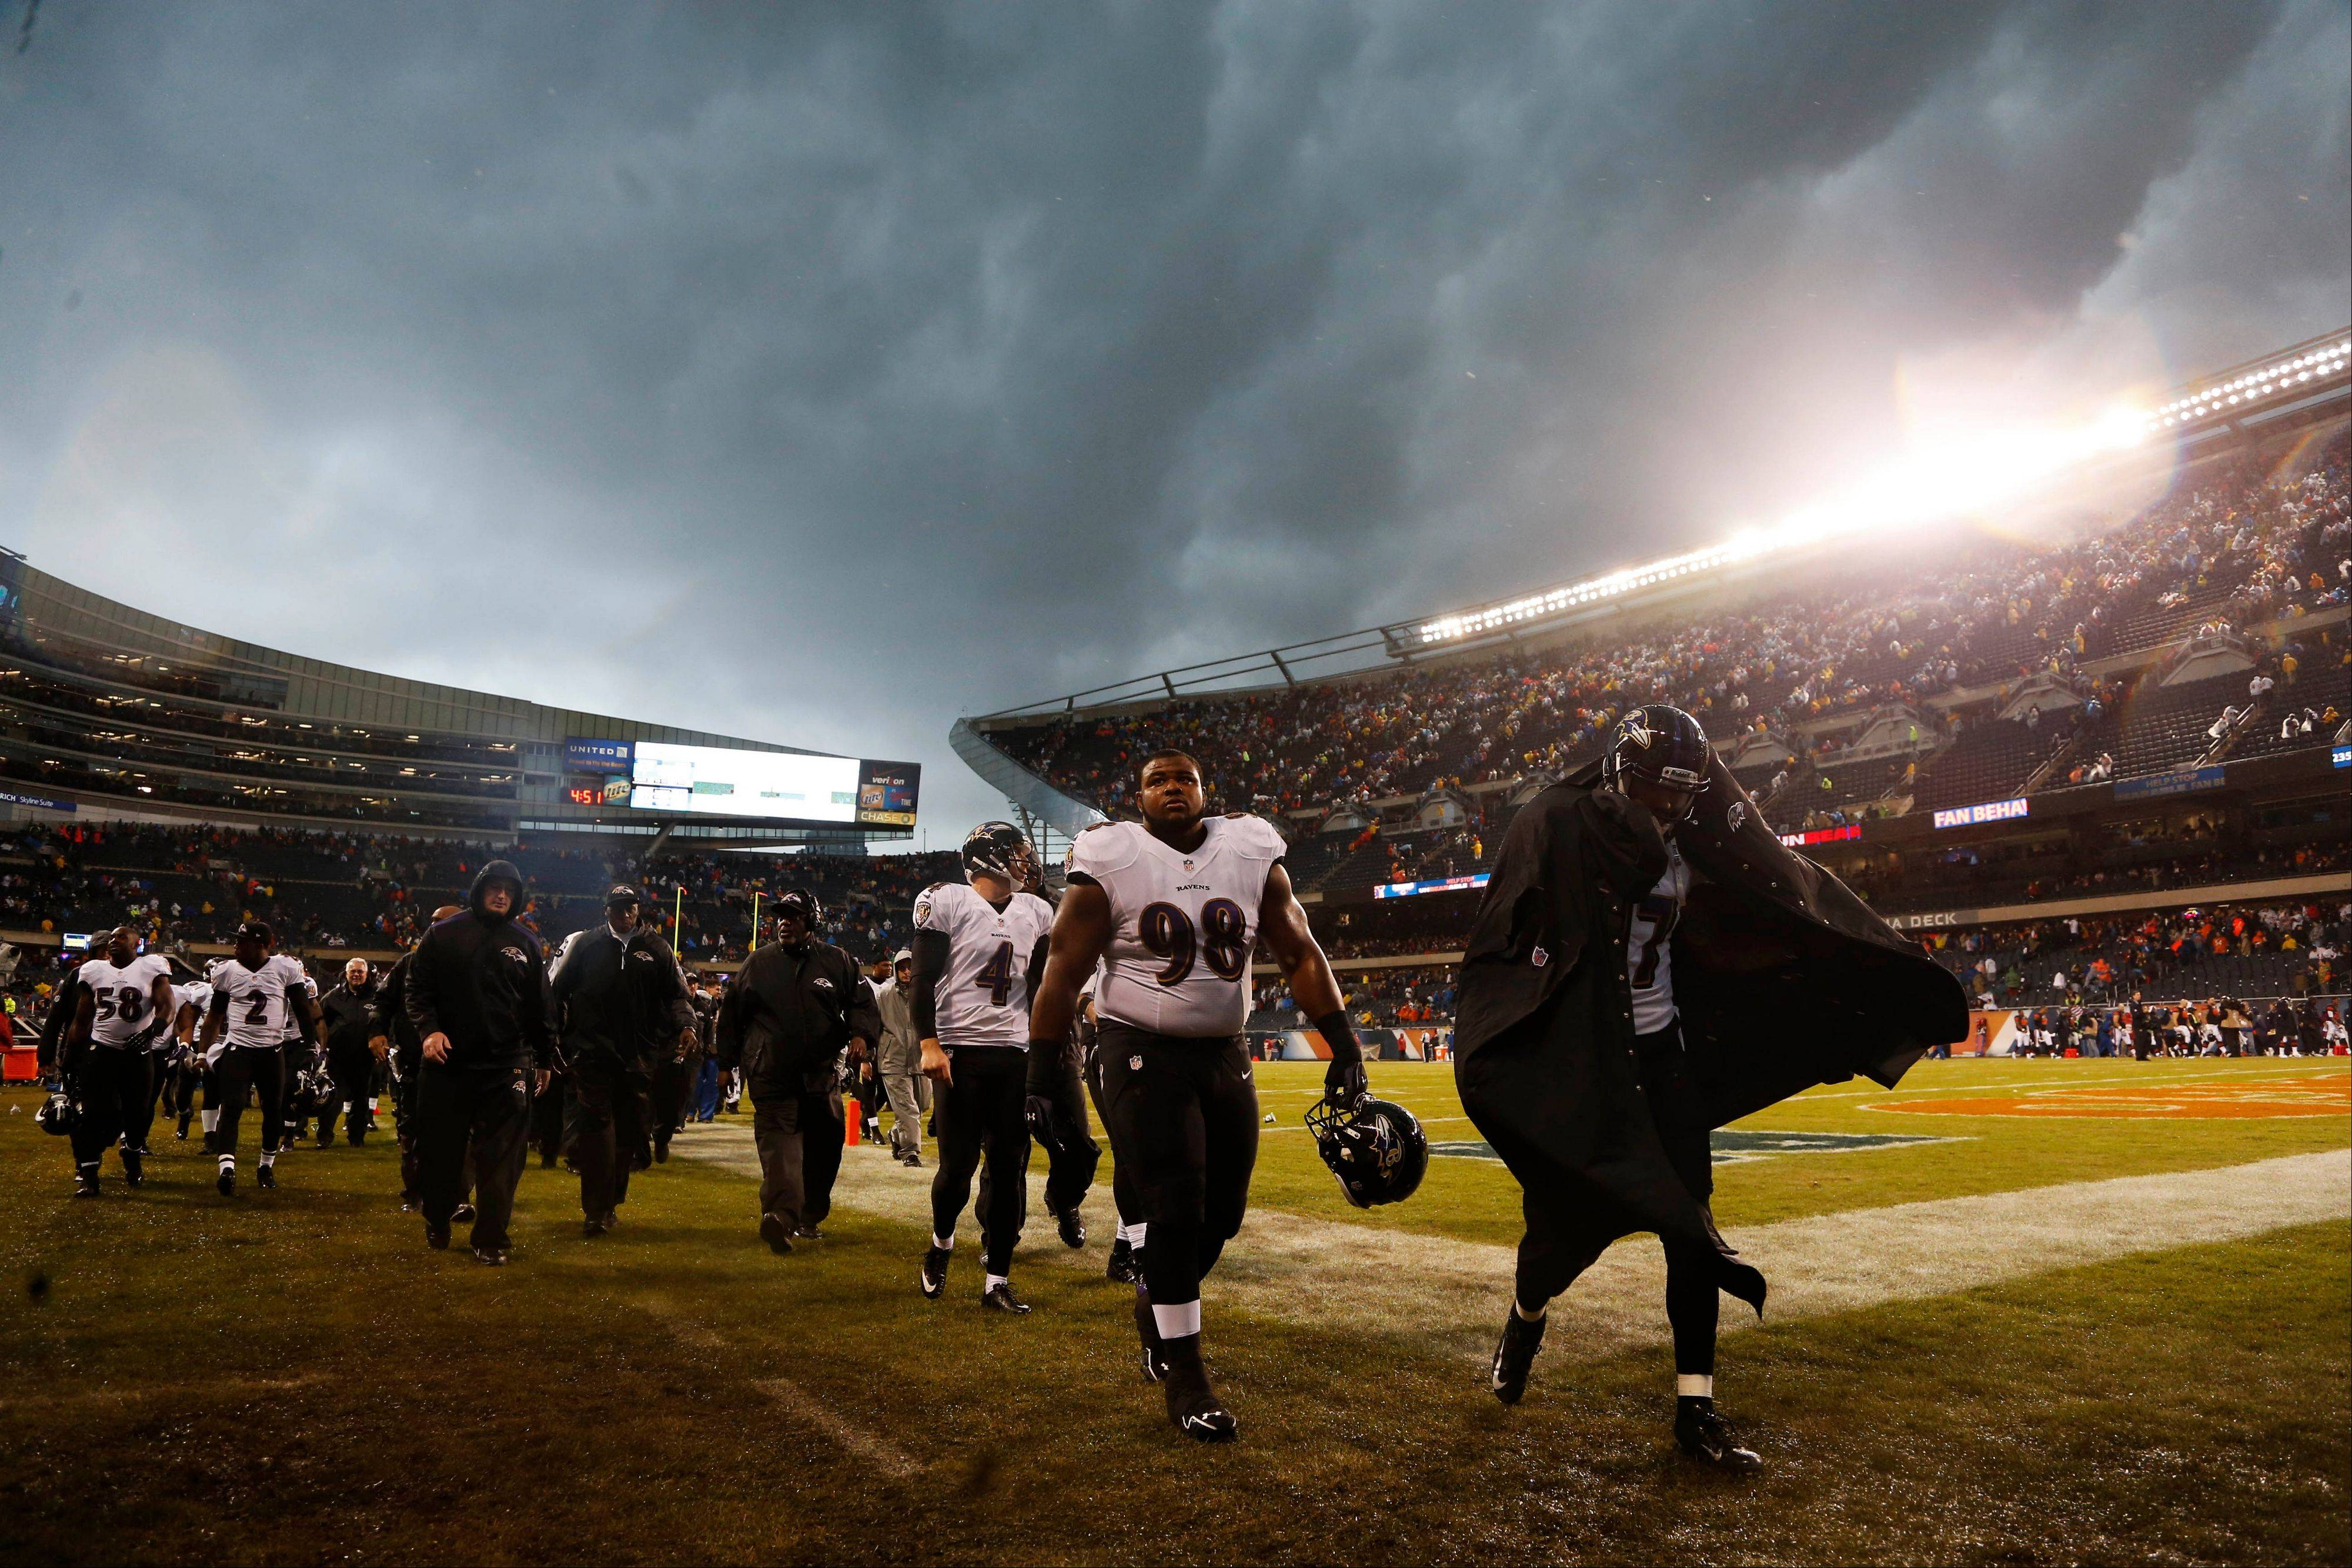 Ravens players left the field when play was suspended against the Bears because of a severe thunderstorm at Soldier Field on Nov. 17. After the delay, players and fans returned to battle the elements.